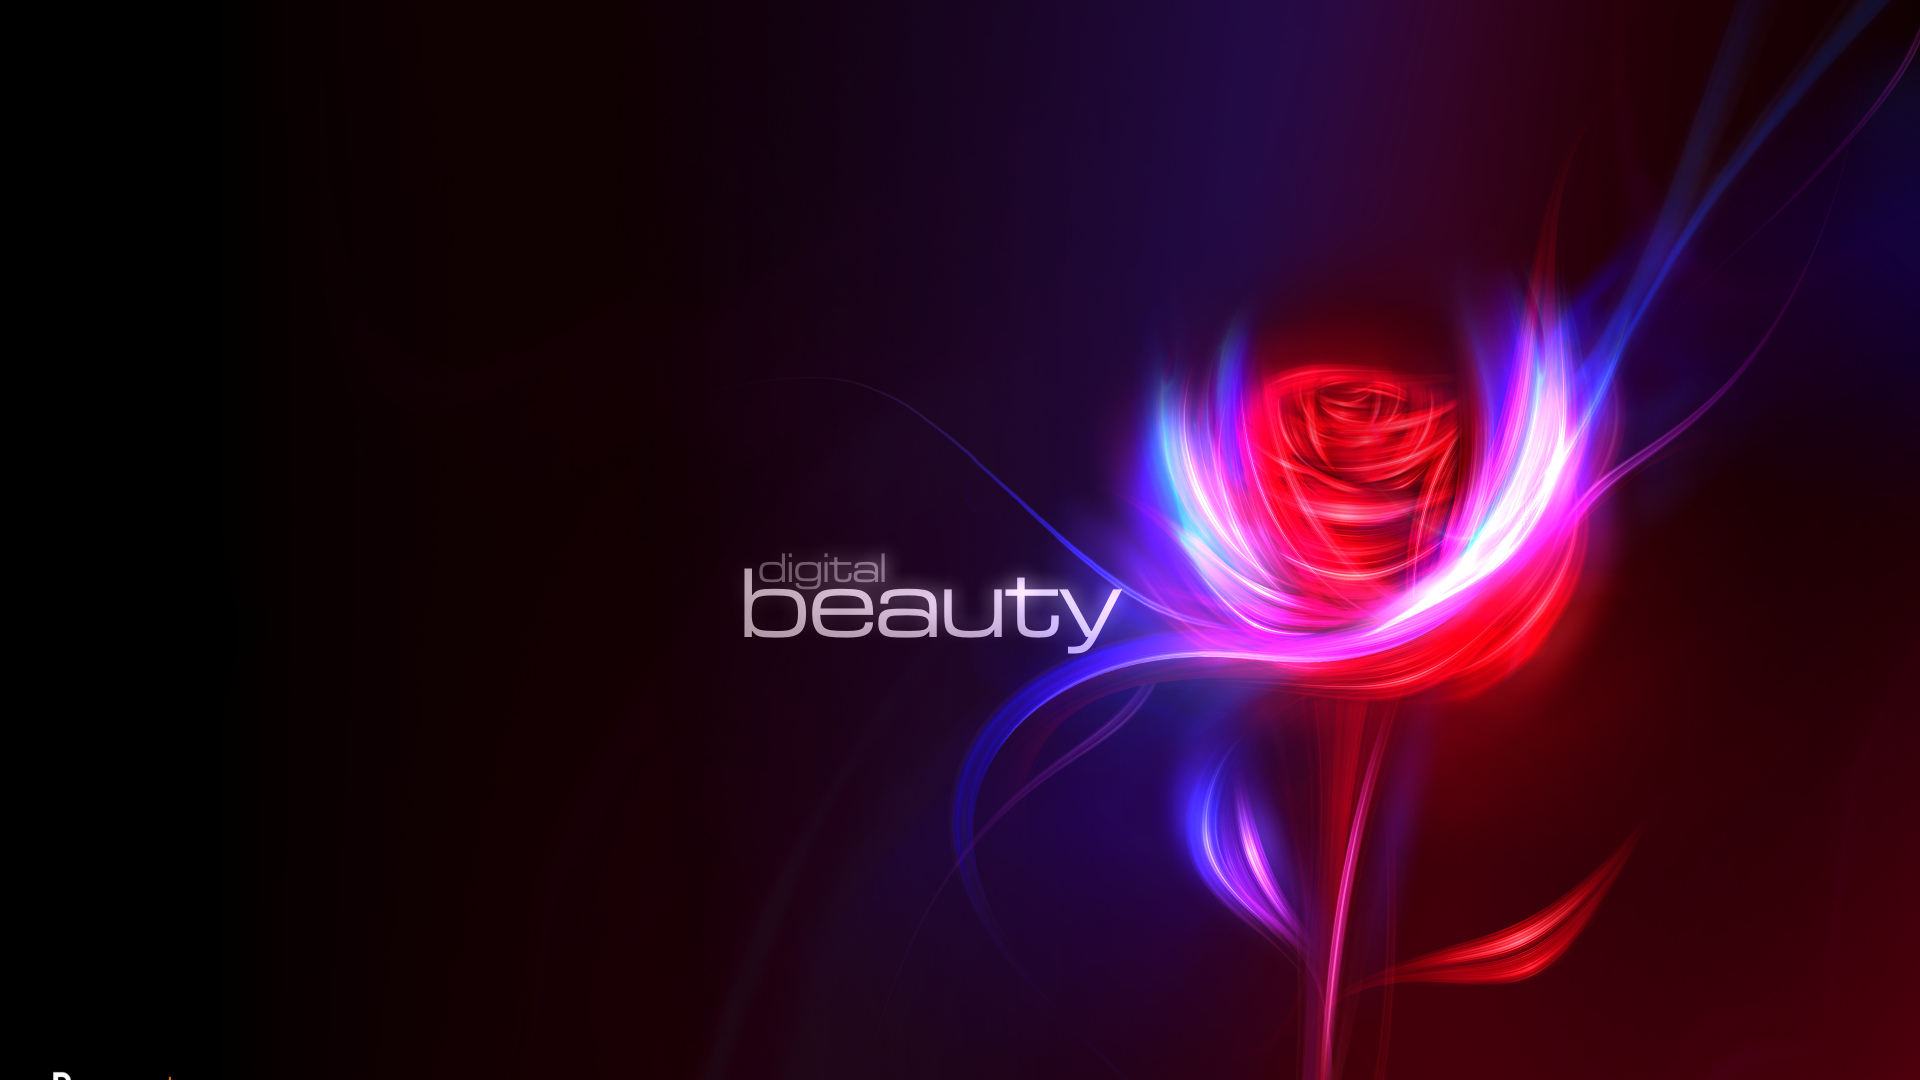 1920x1080 Digital Beauty desktop PC and Mac wallpaper 1920x1080